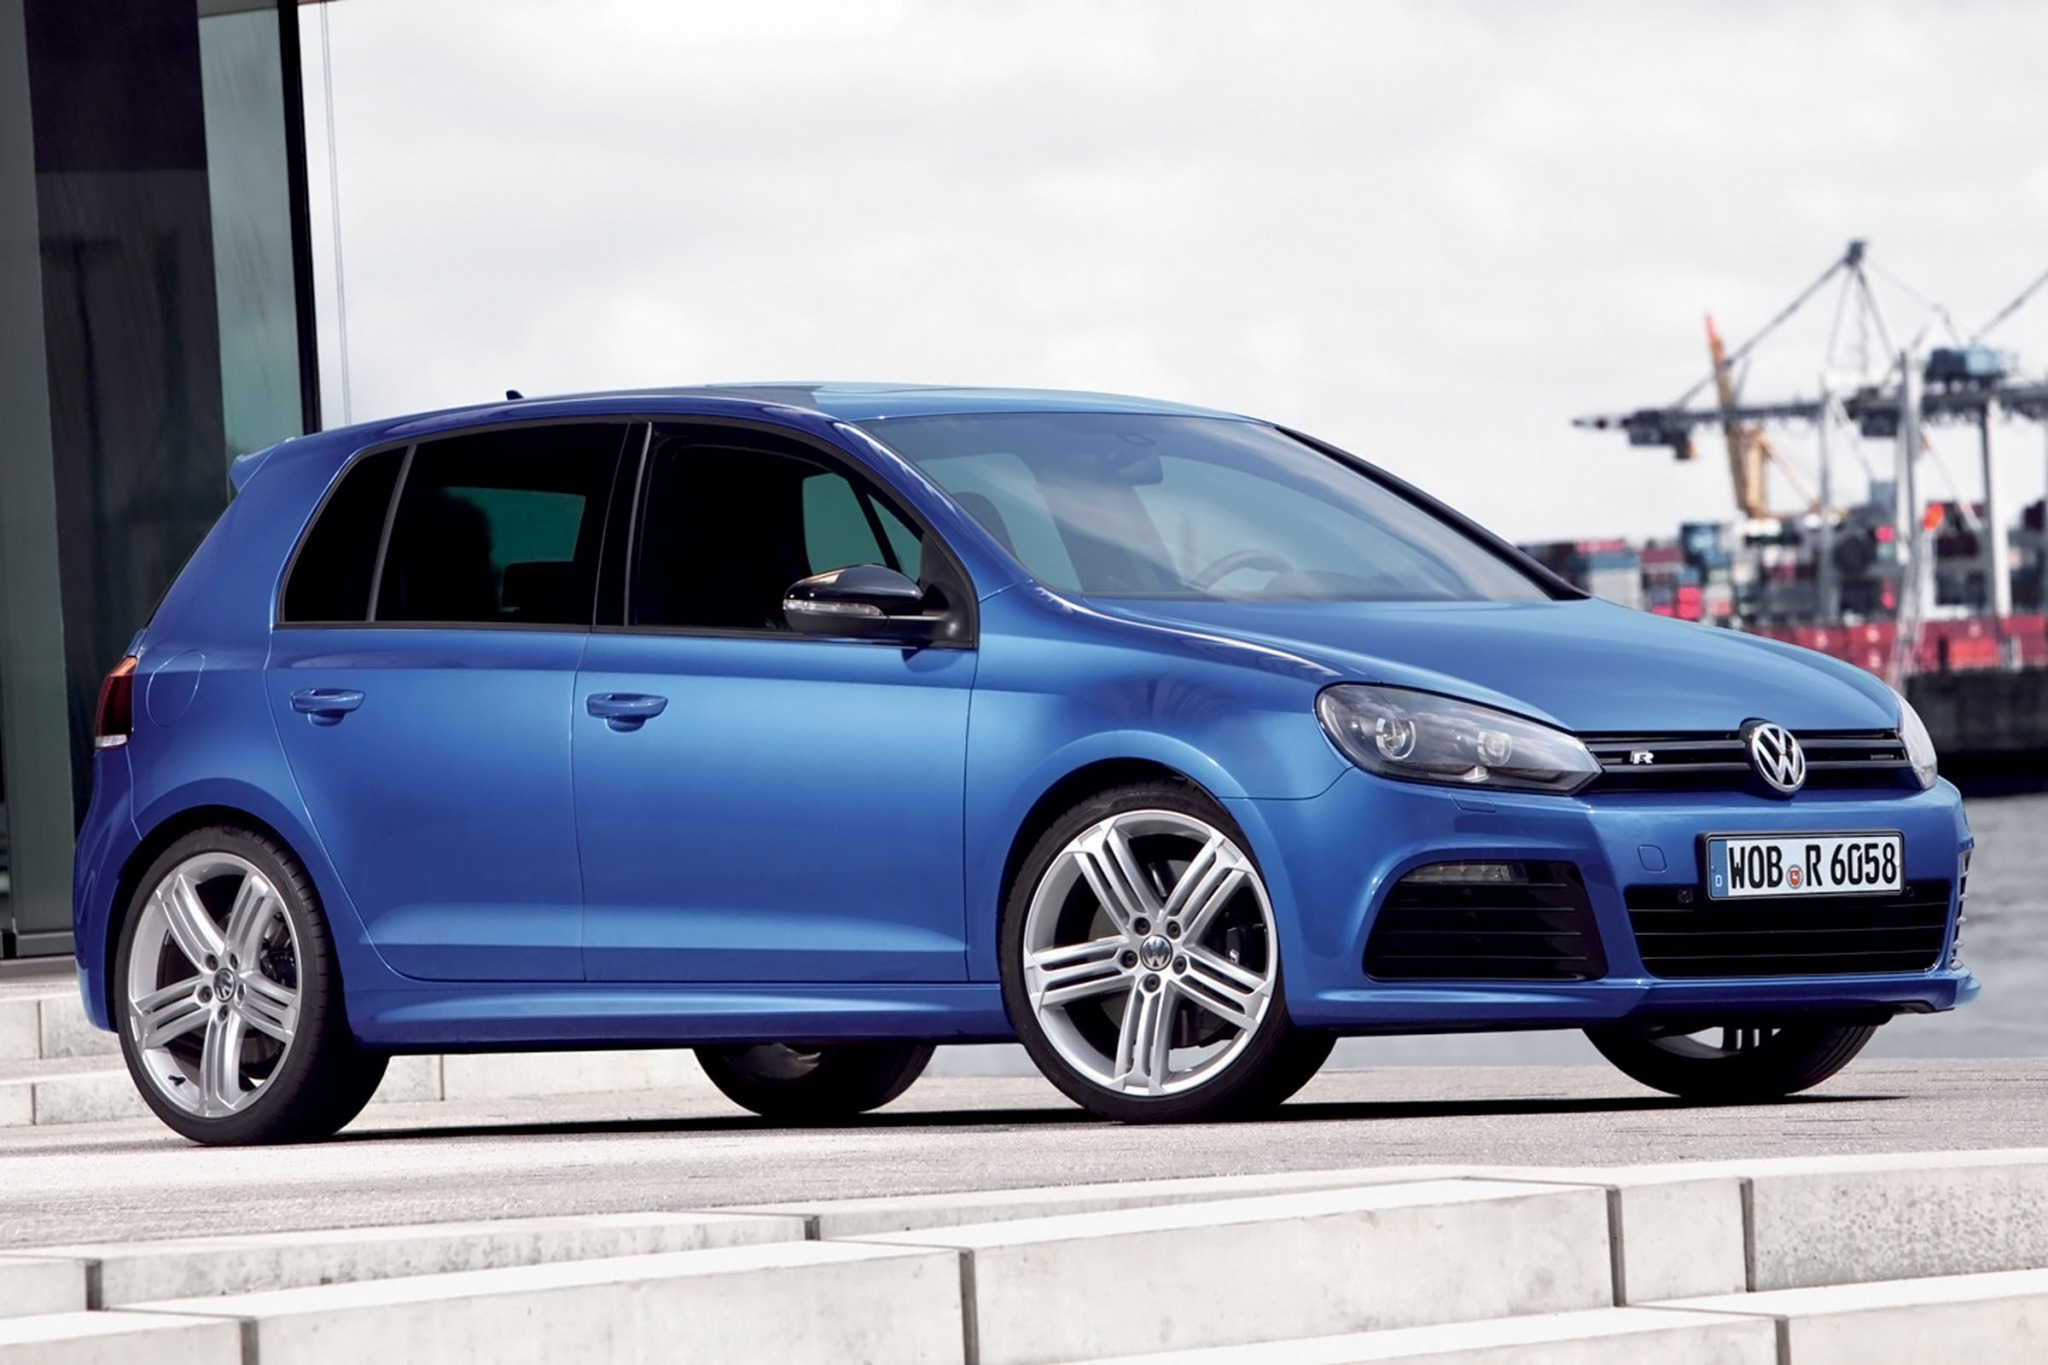 2013 volkswagen golf owners manual 1 manuals and user guides site u2022 rh myxersocialradio com volkswagen golf owners manual 2006 volkswagen golf owners manual pdf 2018